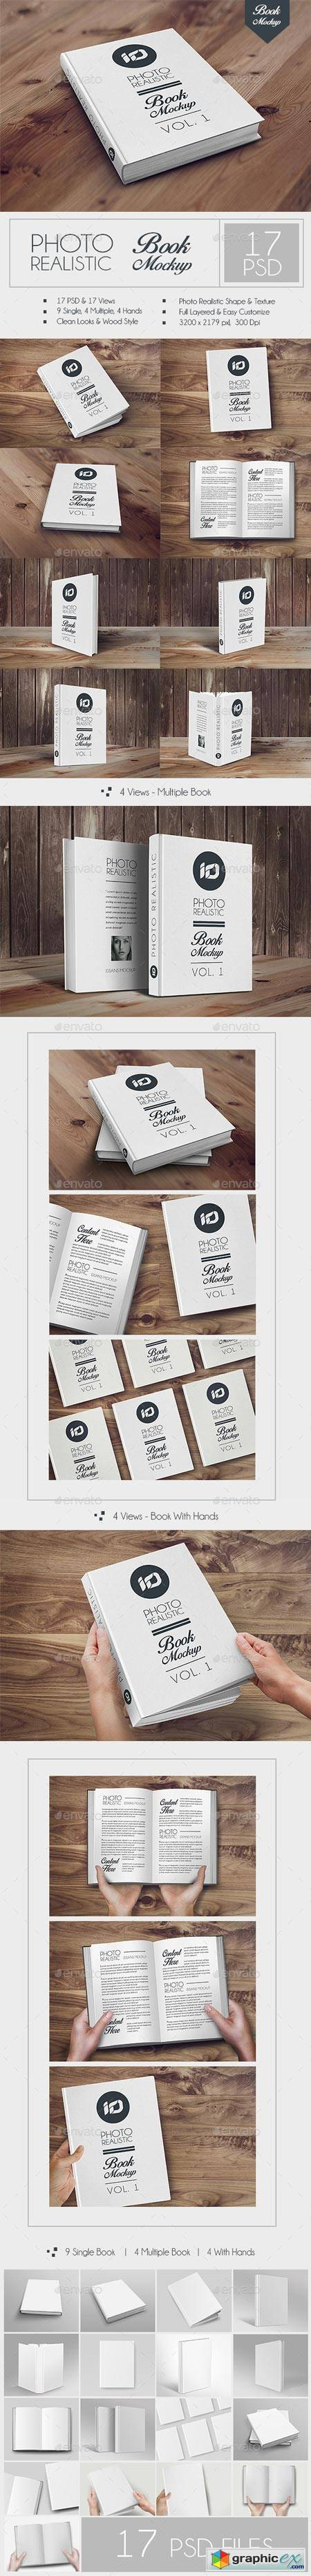 Pin by ell Elincetoo on mock up | Mockup, Photoshop, Books